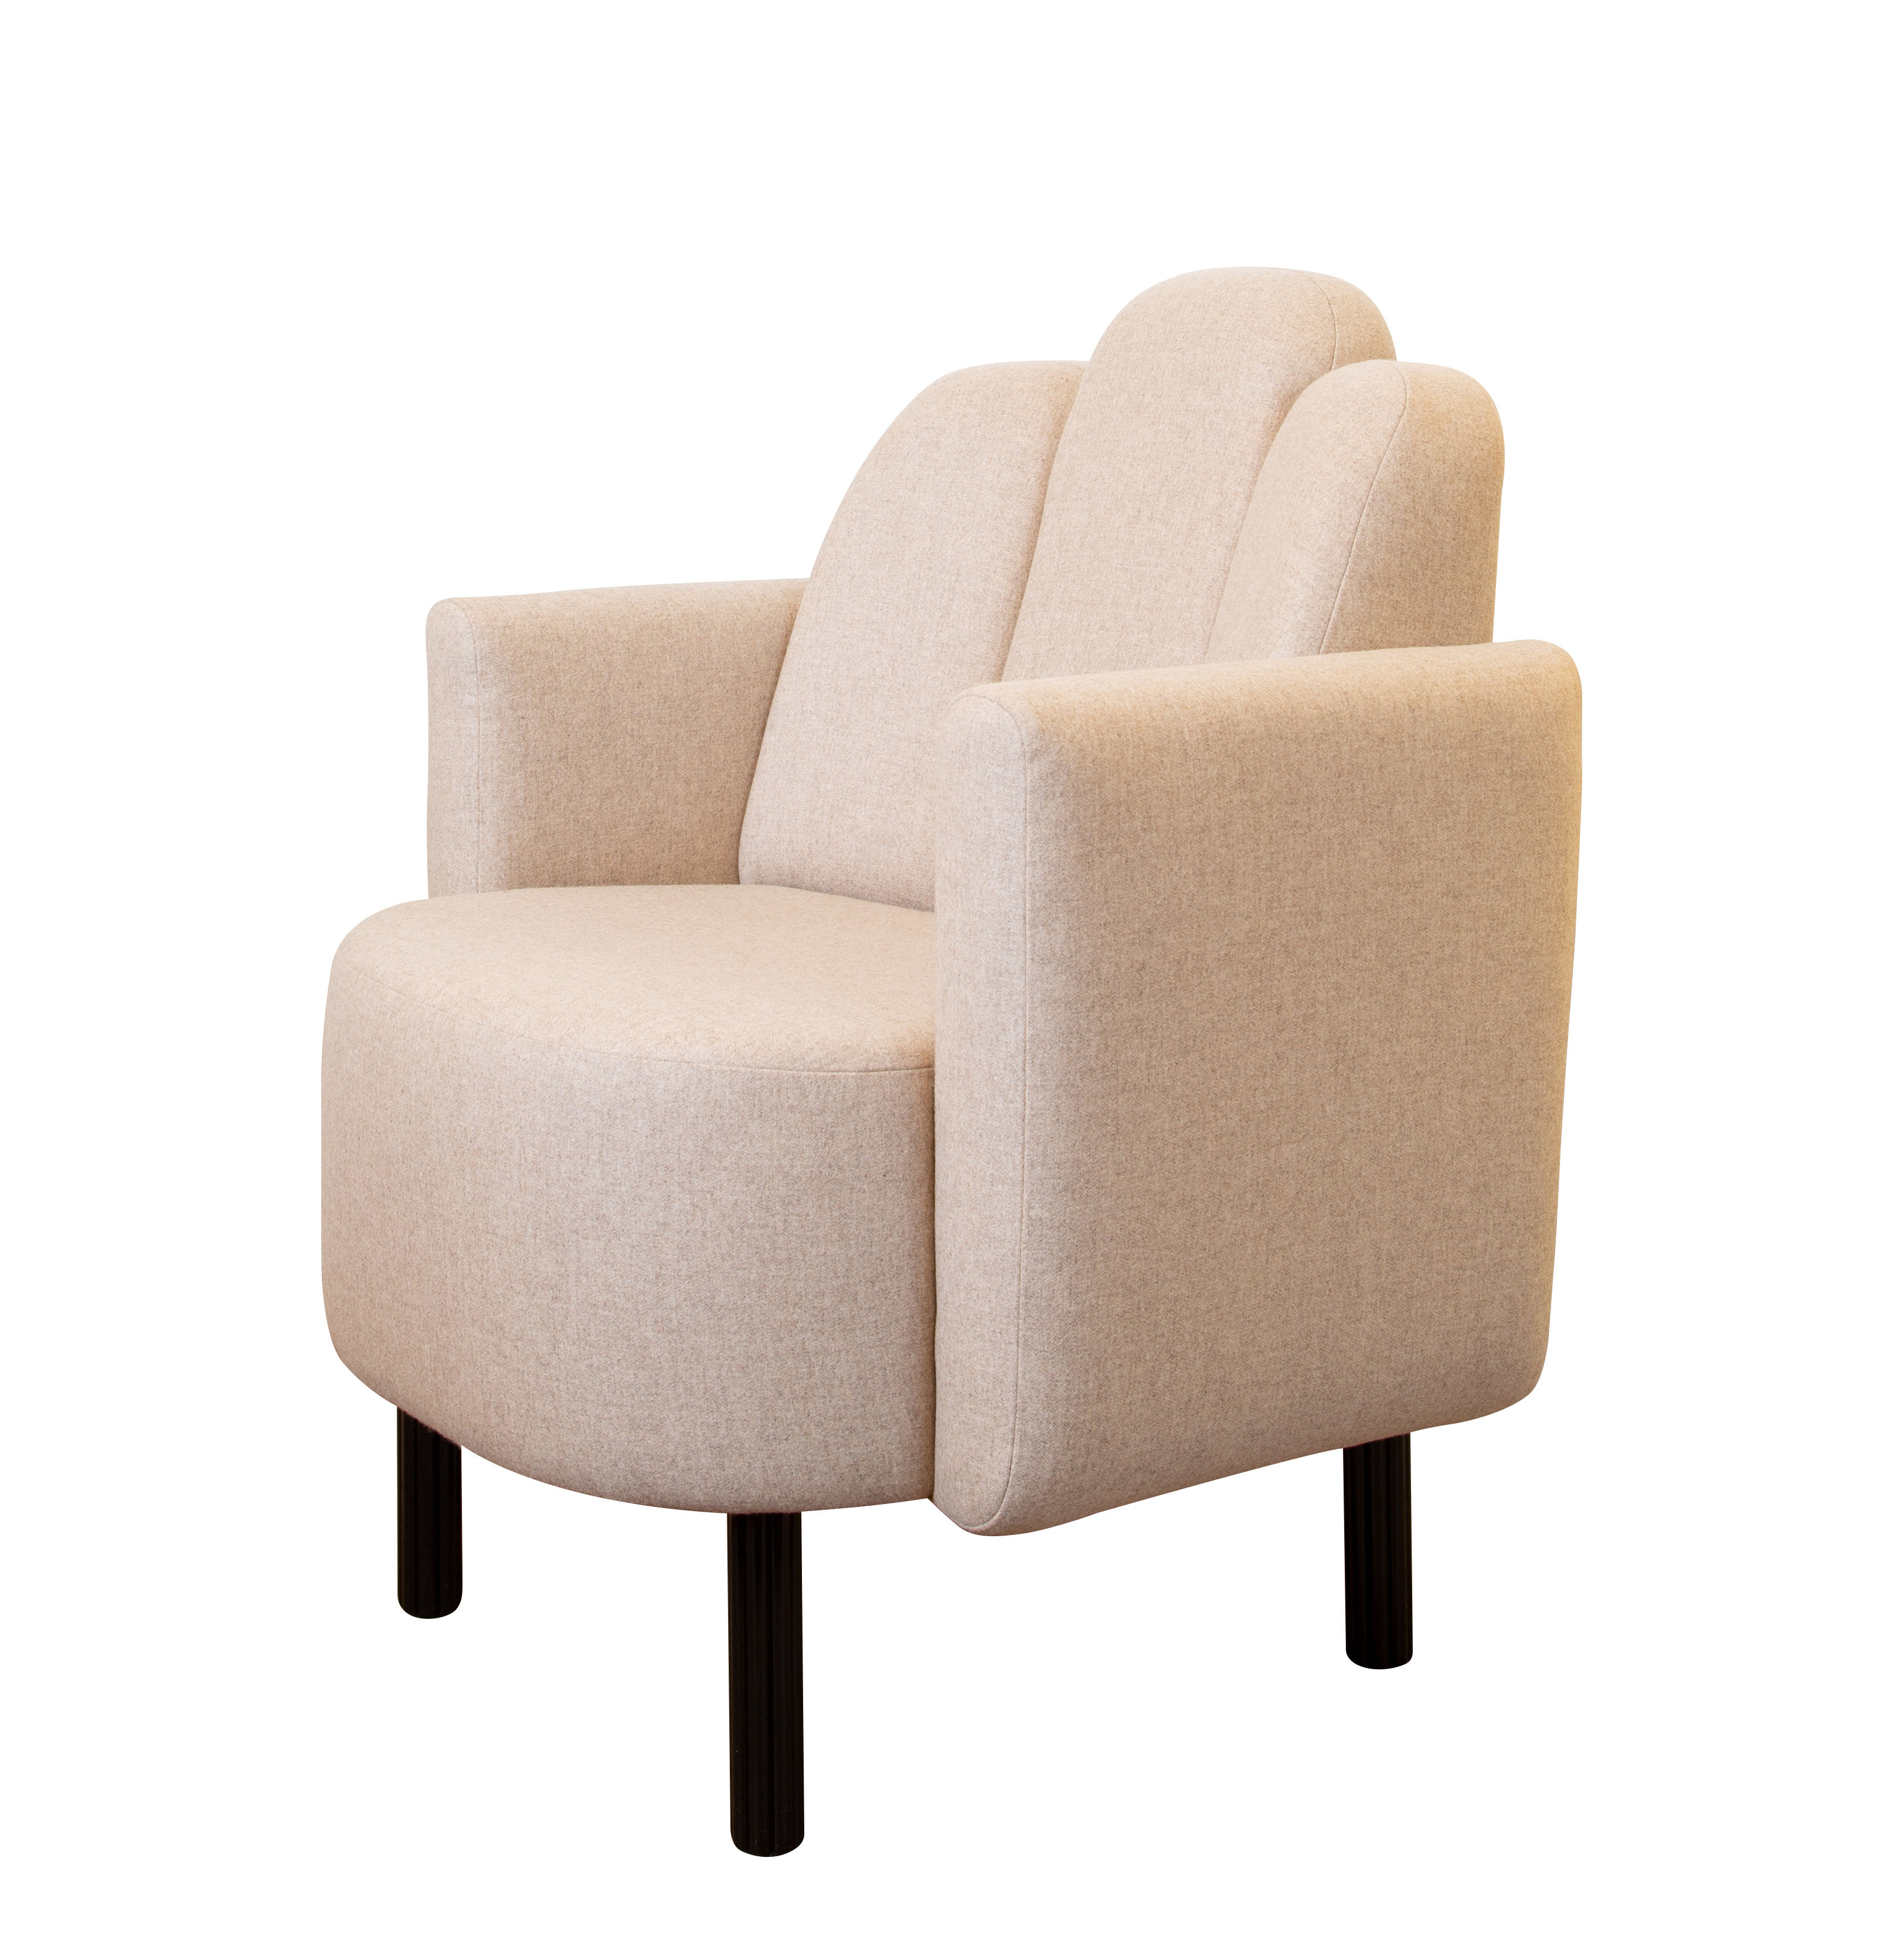 Furniture - Armchairs - Martine Padded armchair - / Fabric by Maison Sarah Lavoine - Beige - Flannel fabric, Foam, Lacquered steel, Wood